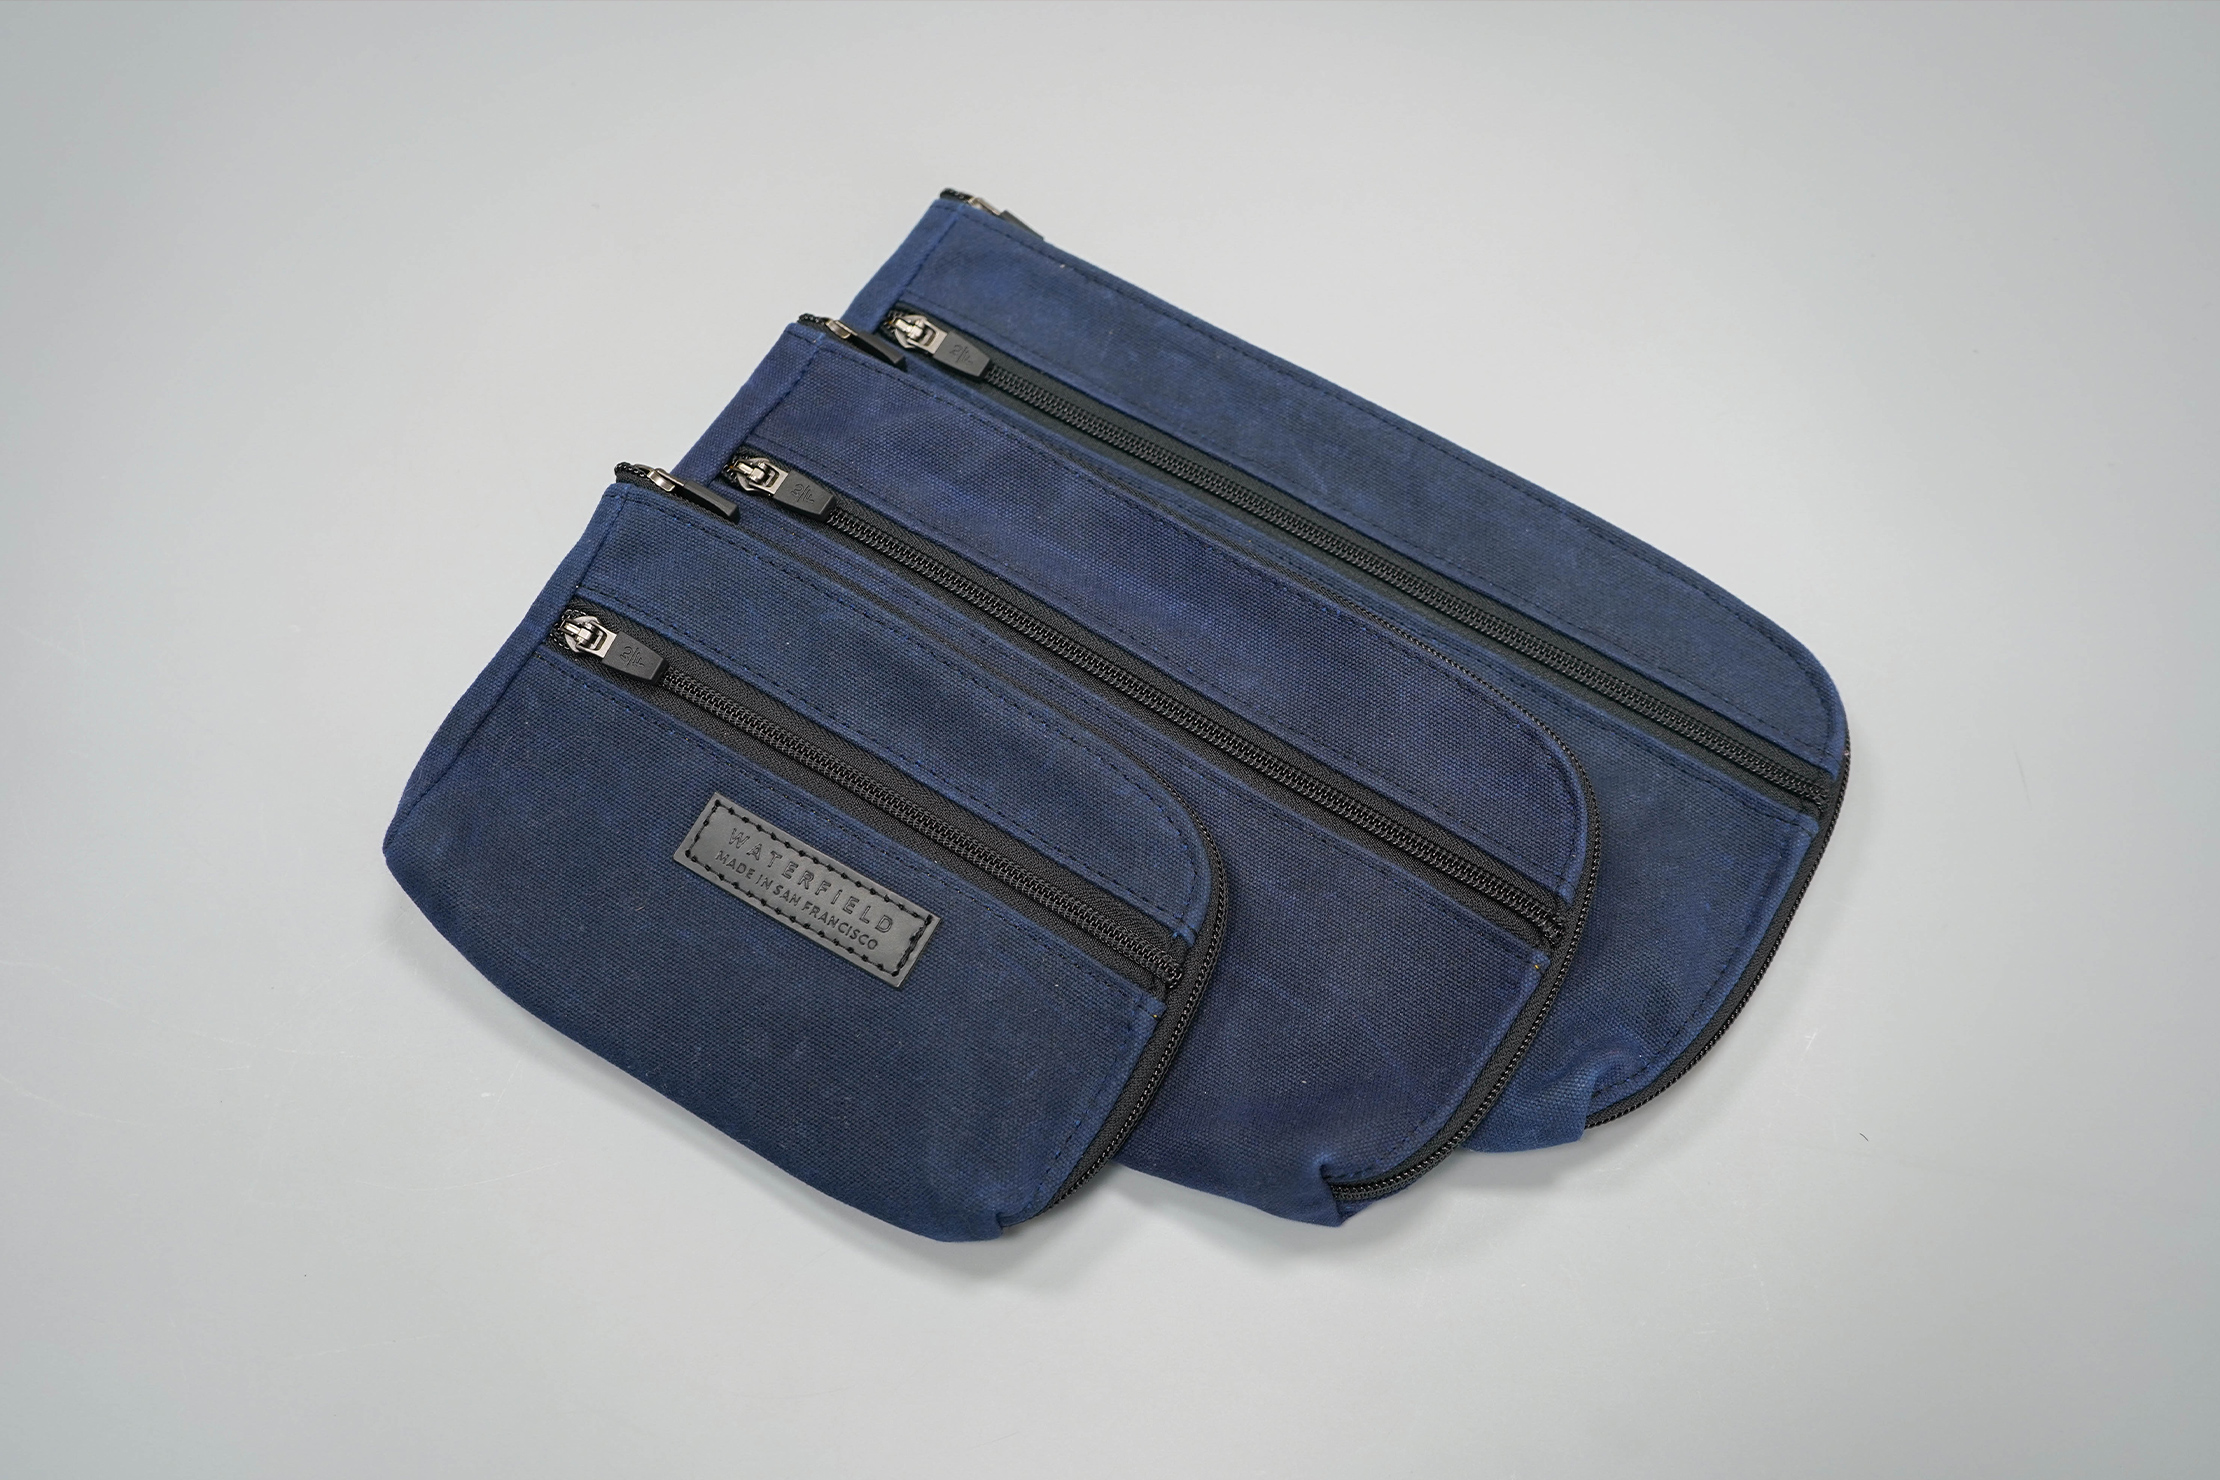 Waterfield Designs Gear Pouches Three Sizes